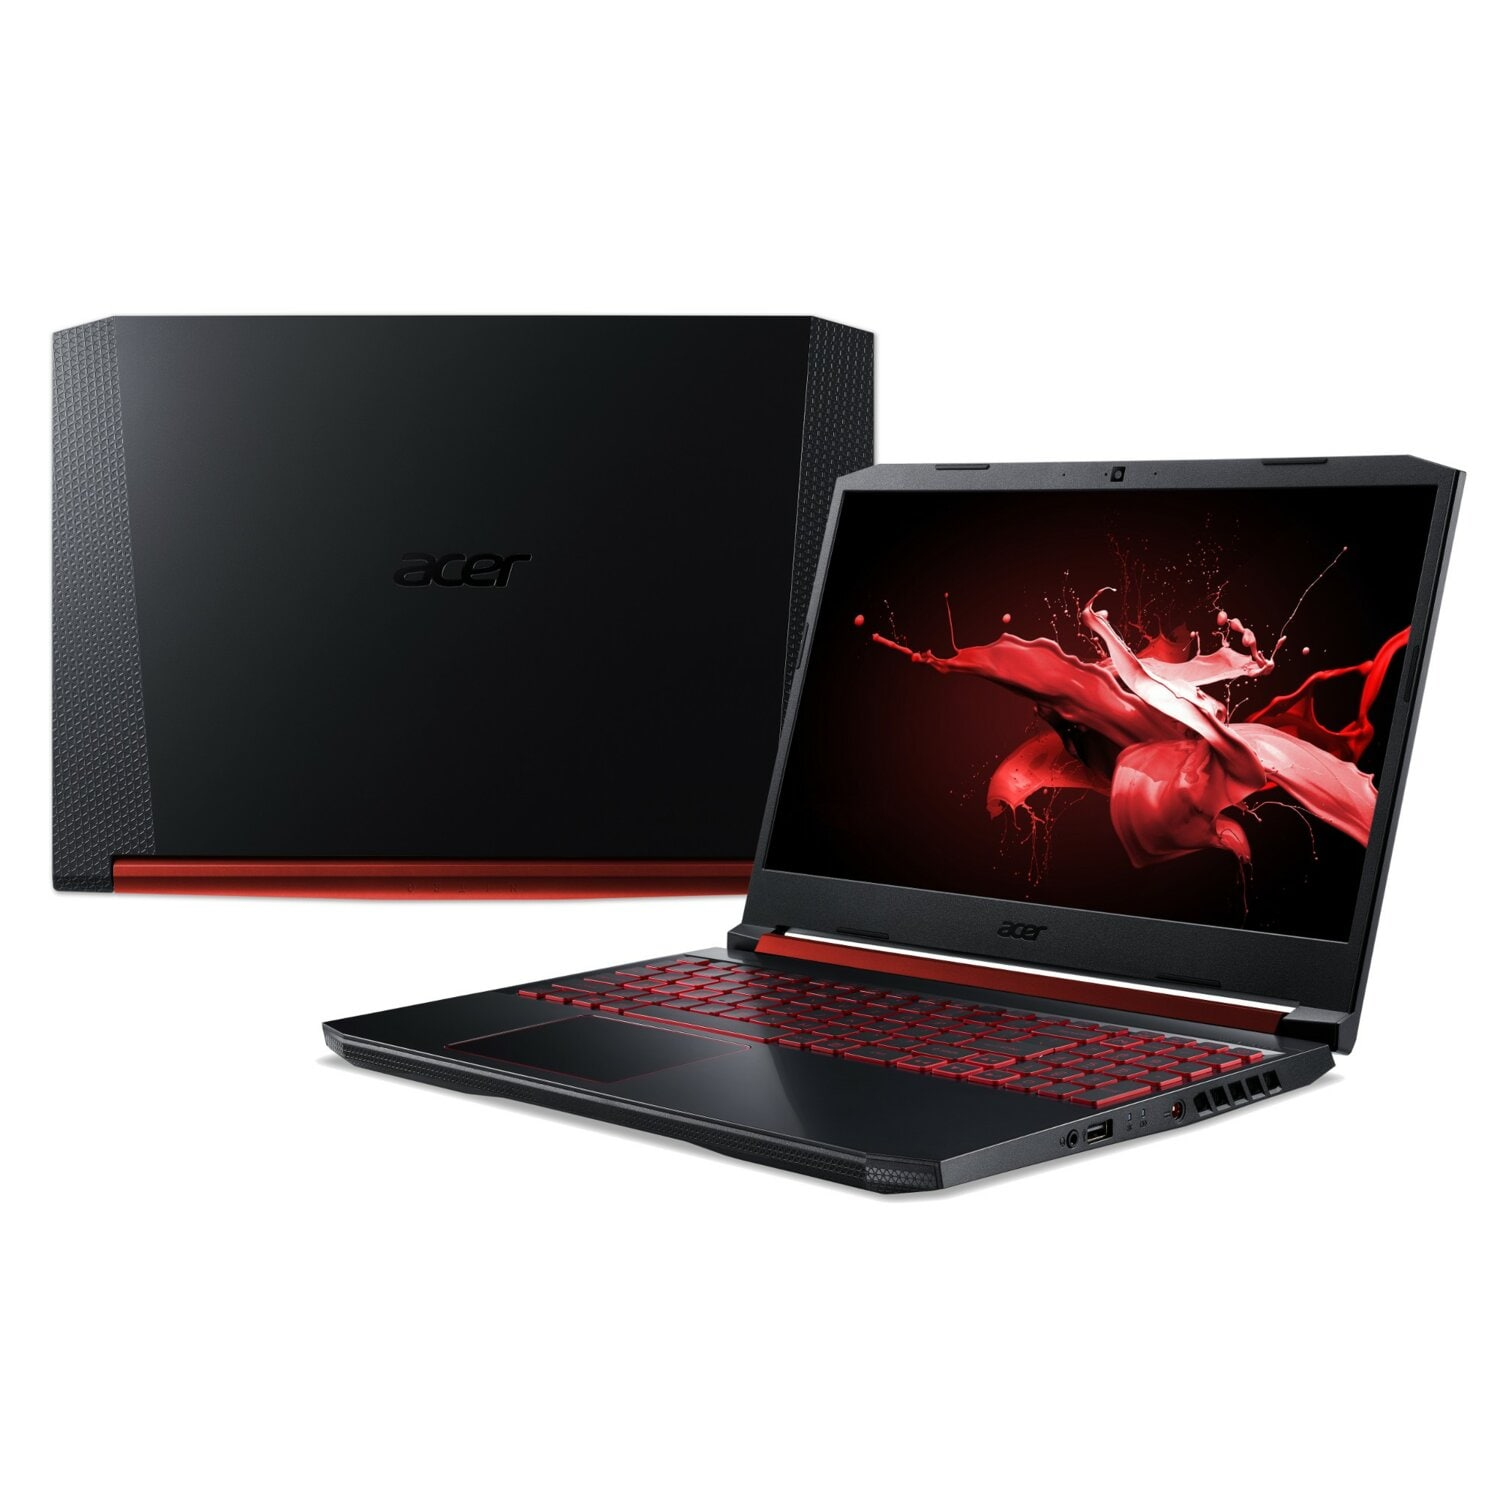 Laptop ACER Nitro 5 AN515-54-70P2 NH.Q59EP.047 i7-9750H/8GB/512GB SSD/GTX1650/Win10H